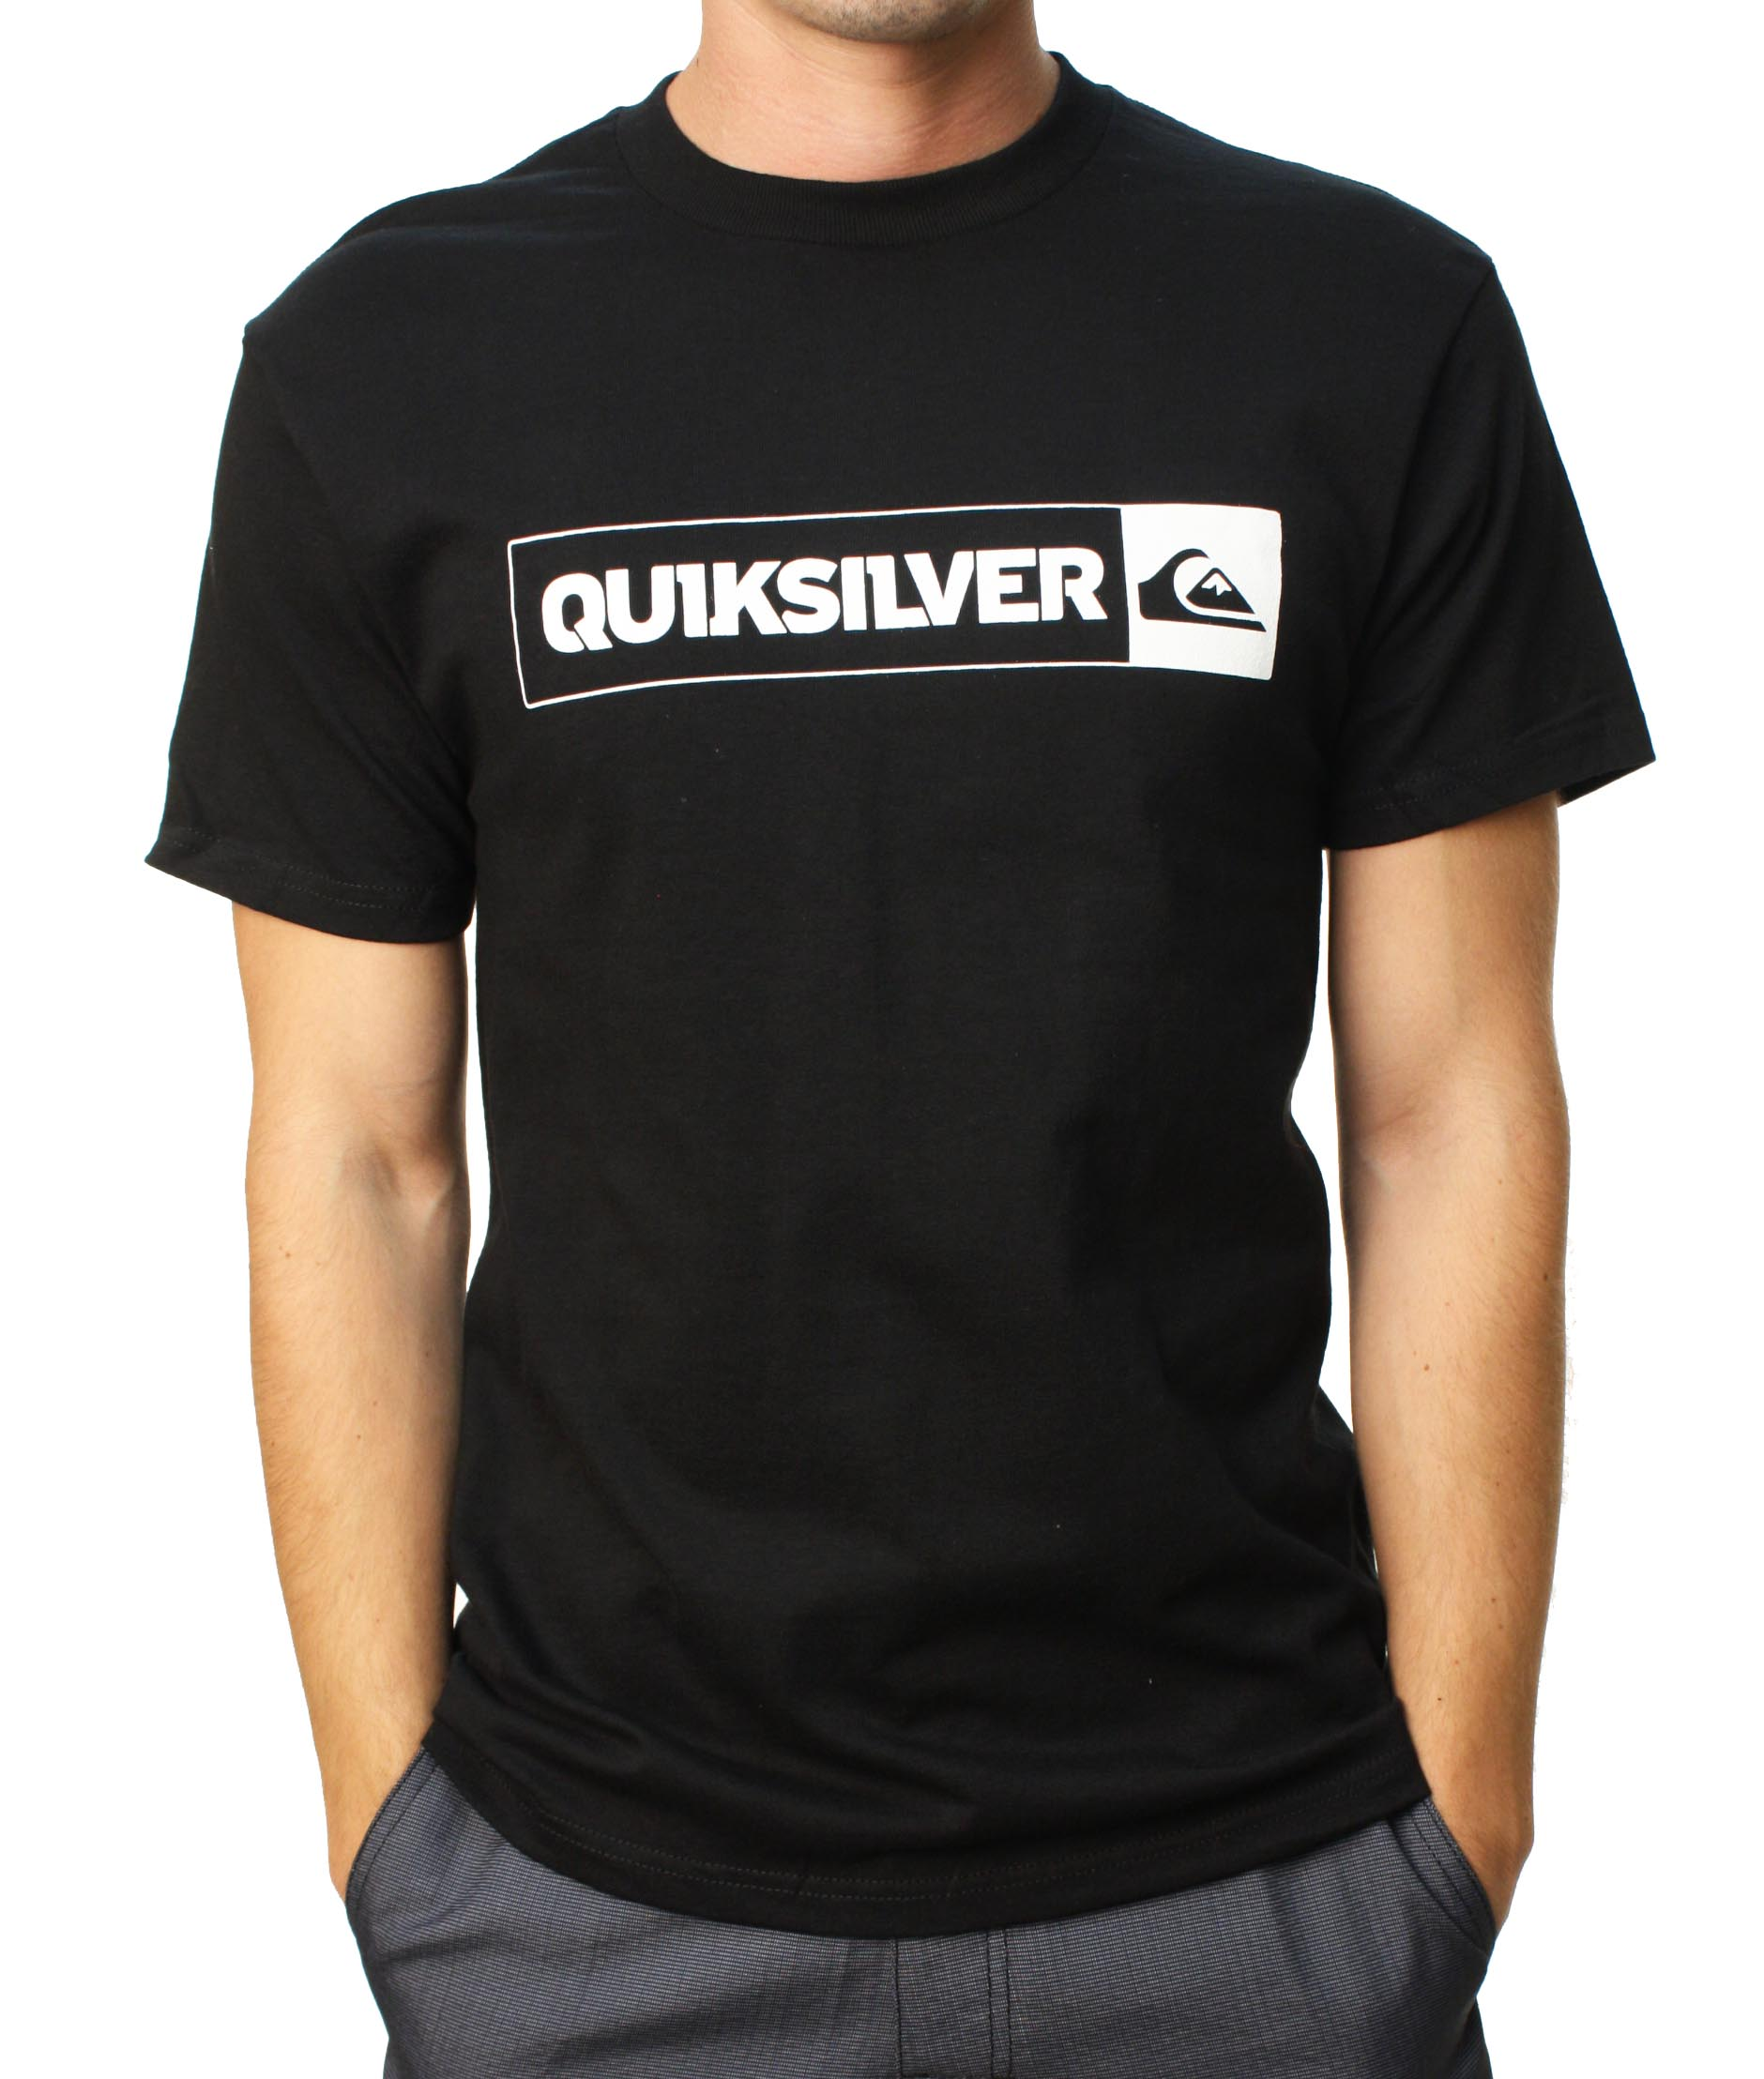 "Quiksilver Men's ""Mystery Meat-MT0"" Short Sleeve T-Shirt Black QSYT0H55-BLK at Sears.com"